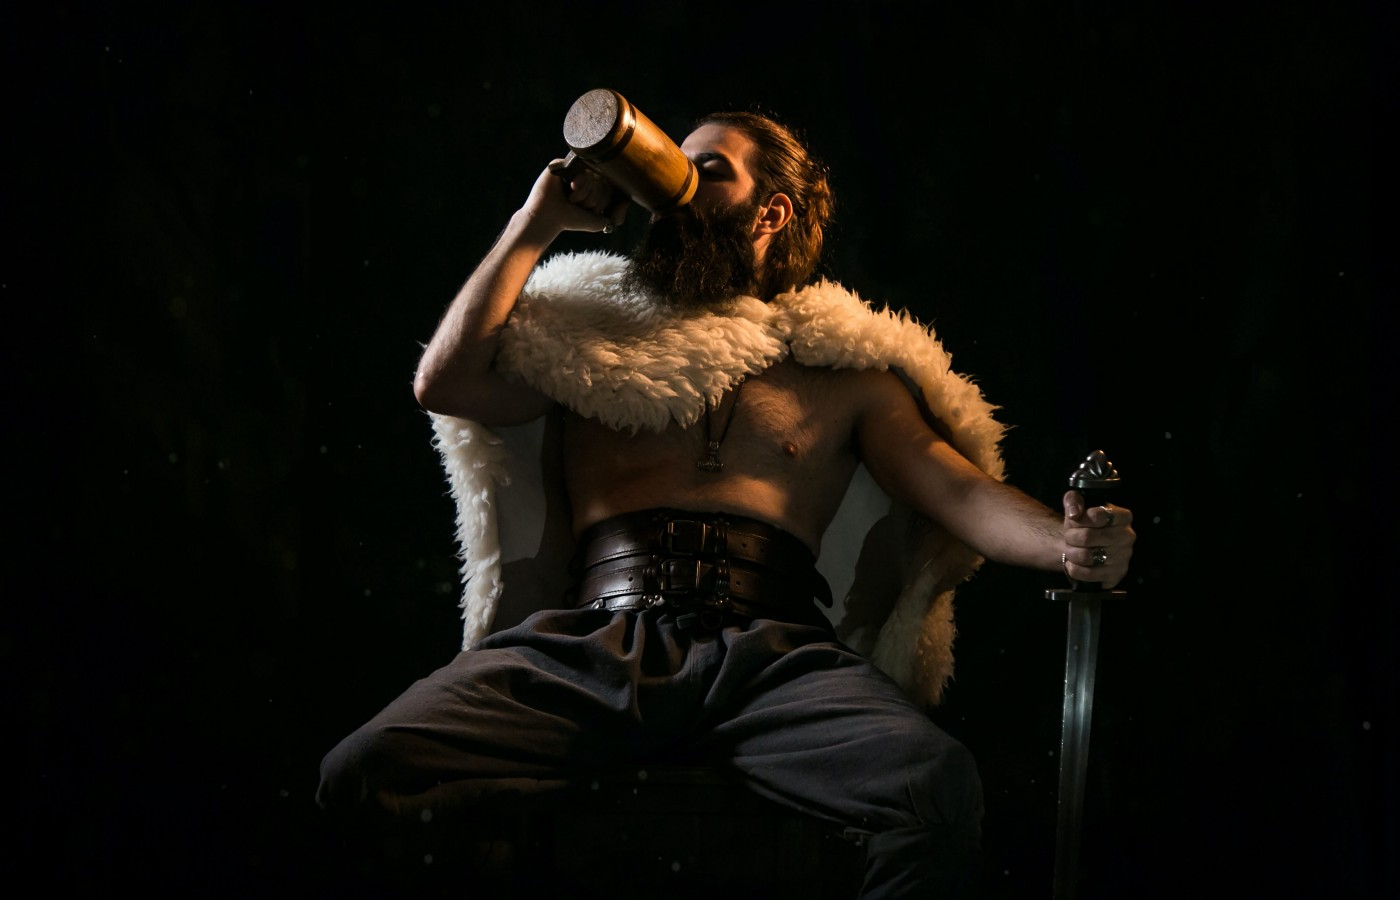 A man drinking from a mug and holding a sword. Portrait of a Reluctant Hero by Jim Latham in Jim's Shorts.